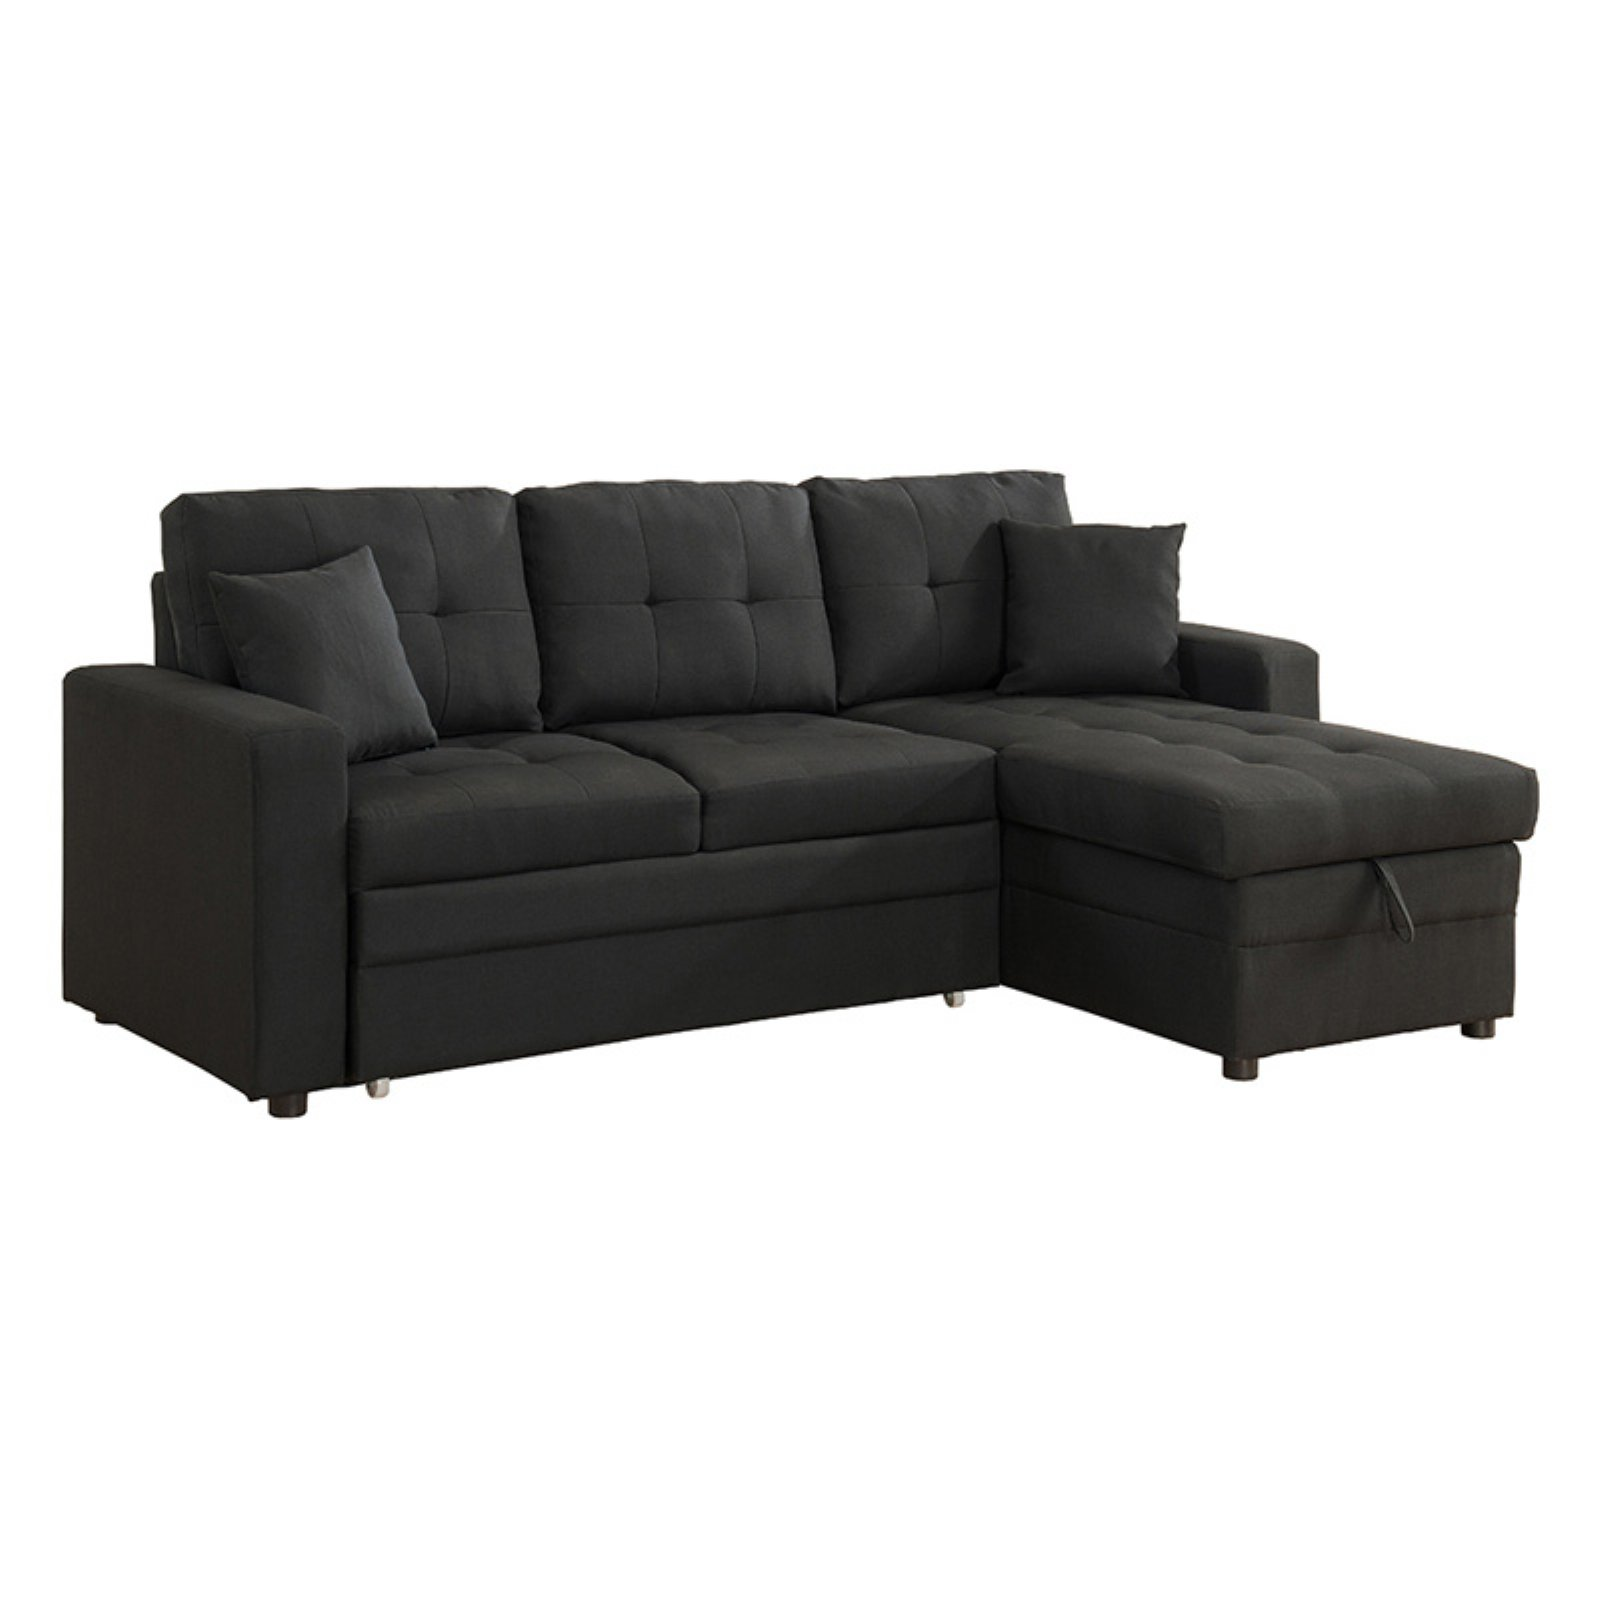 Milton Greens Stars Darwin Sectional Sofa with Storage and Pull Out Bed -  Traveller Location